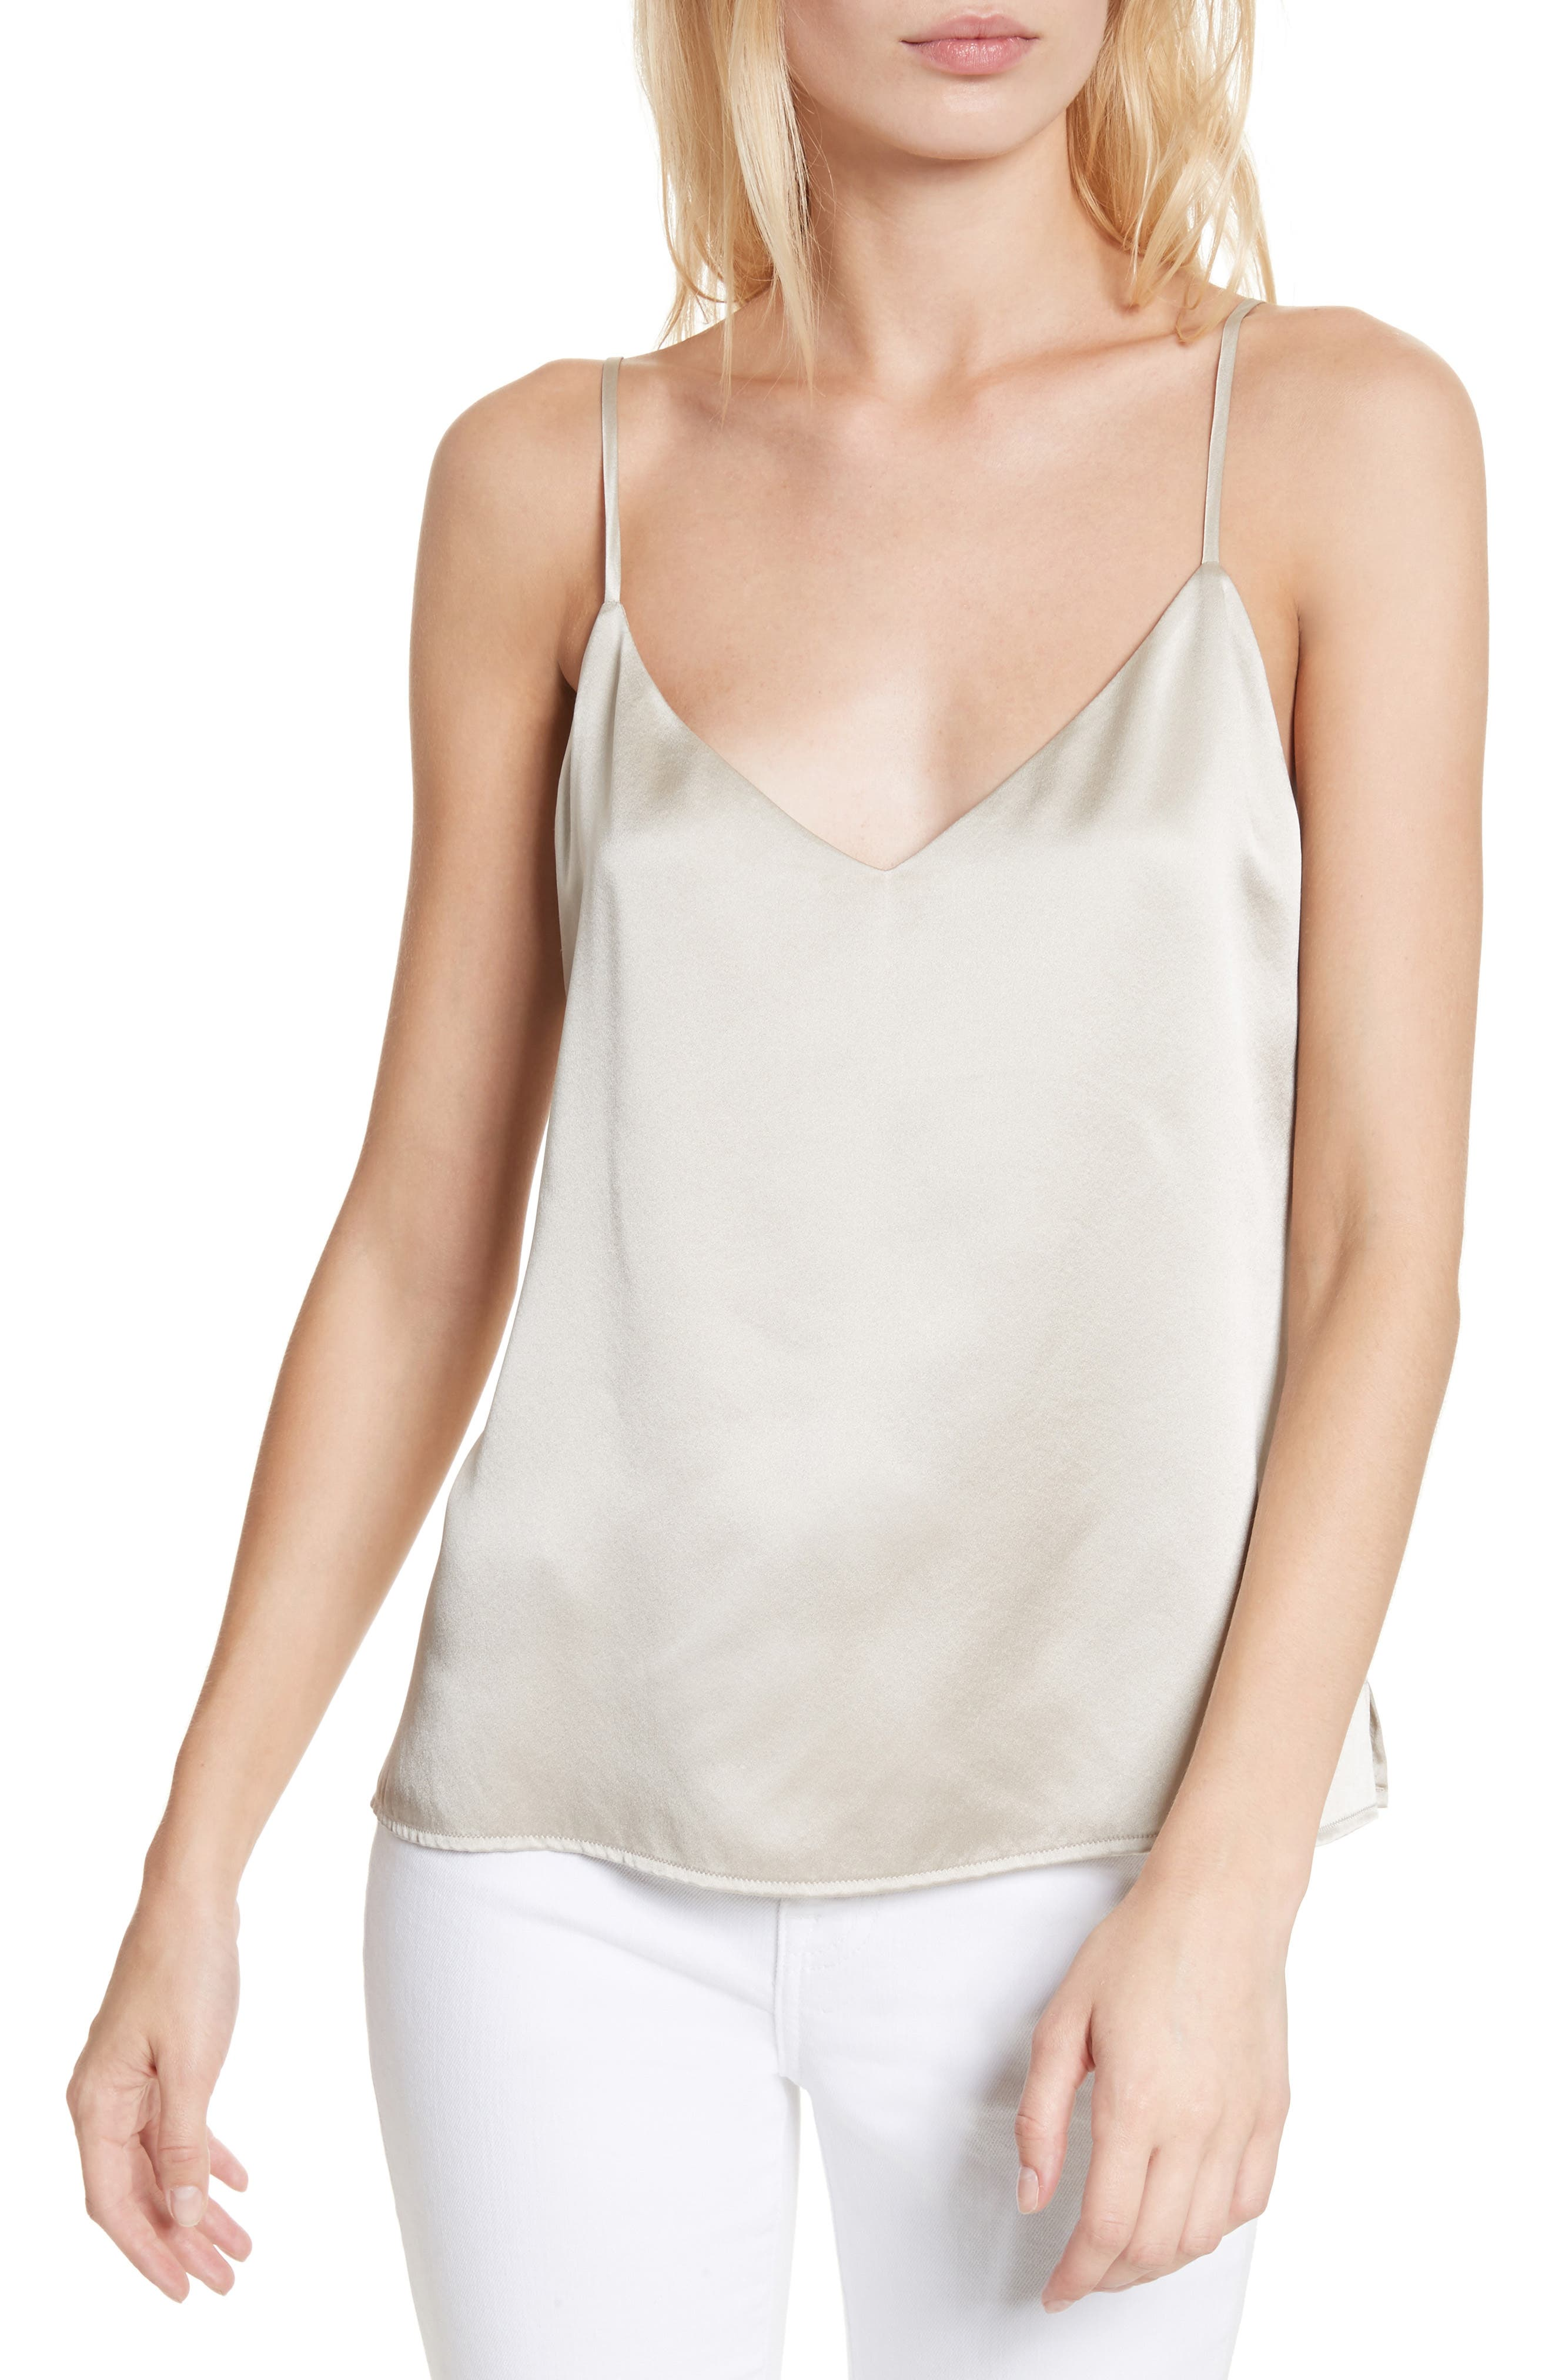 Cheap Sale Online Sleeveless Top - gold mirror-14 by VIDA VIDA Clearance Best Wholesale FU6pb1